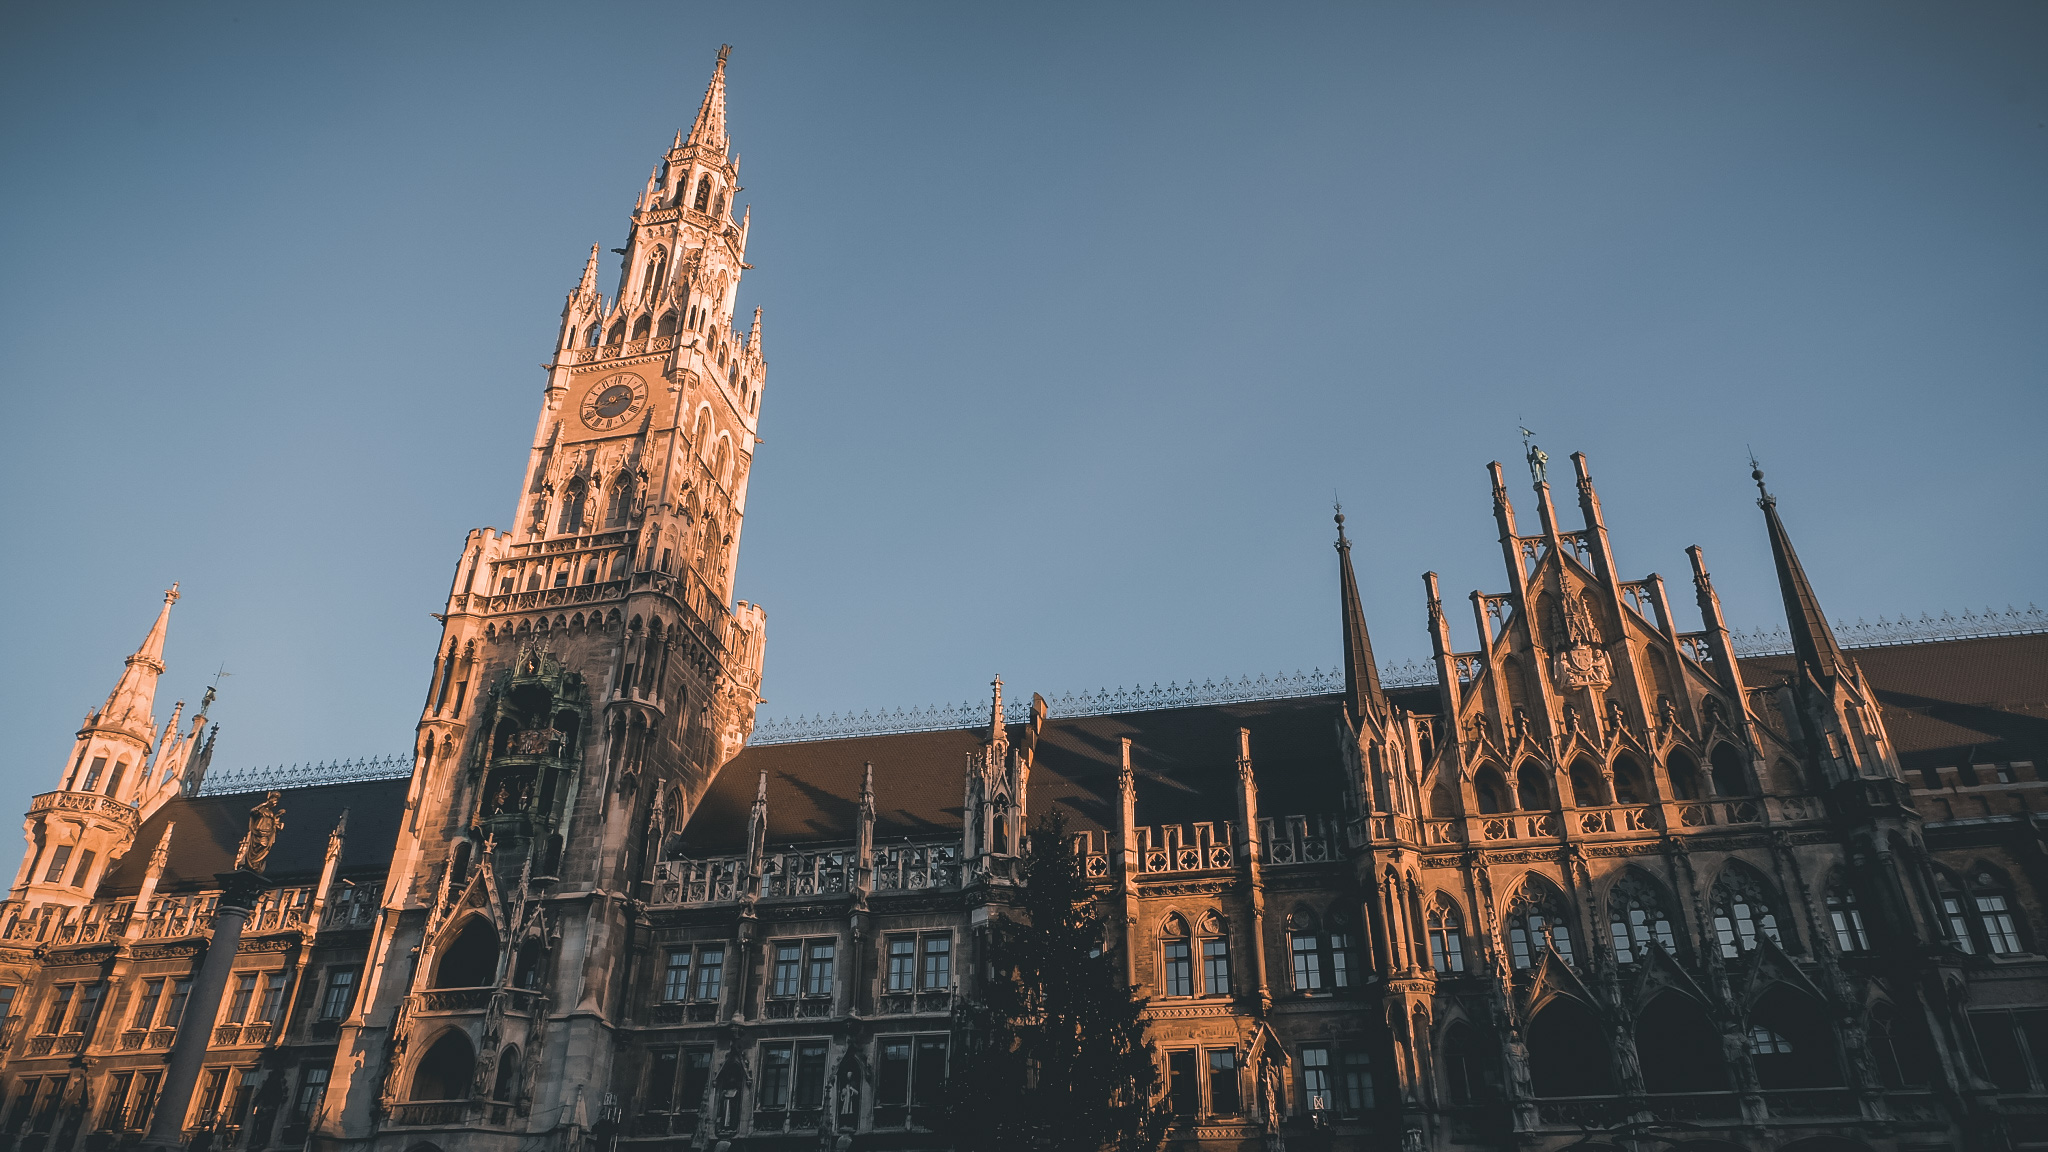 Neues Rathaus, Germany